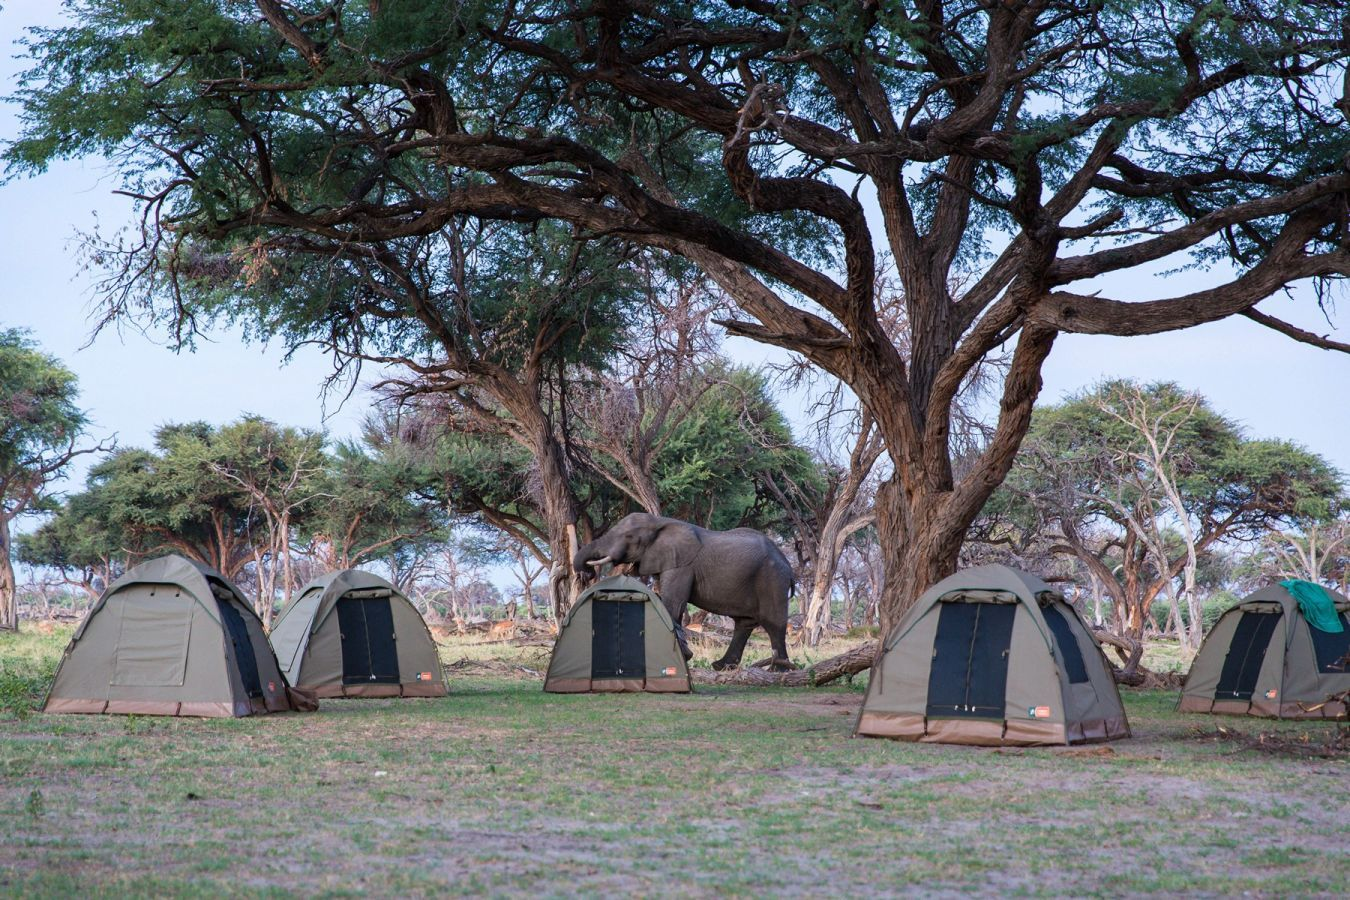 Olifant in camp